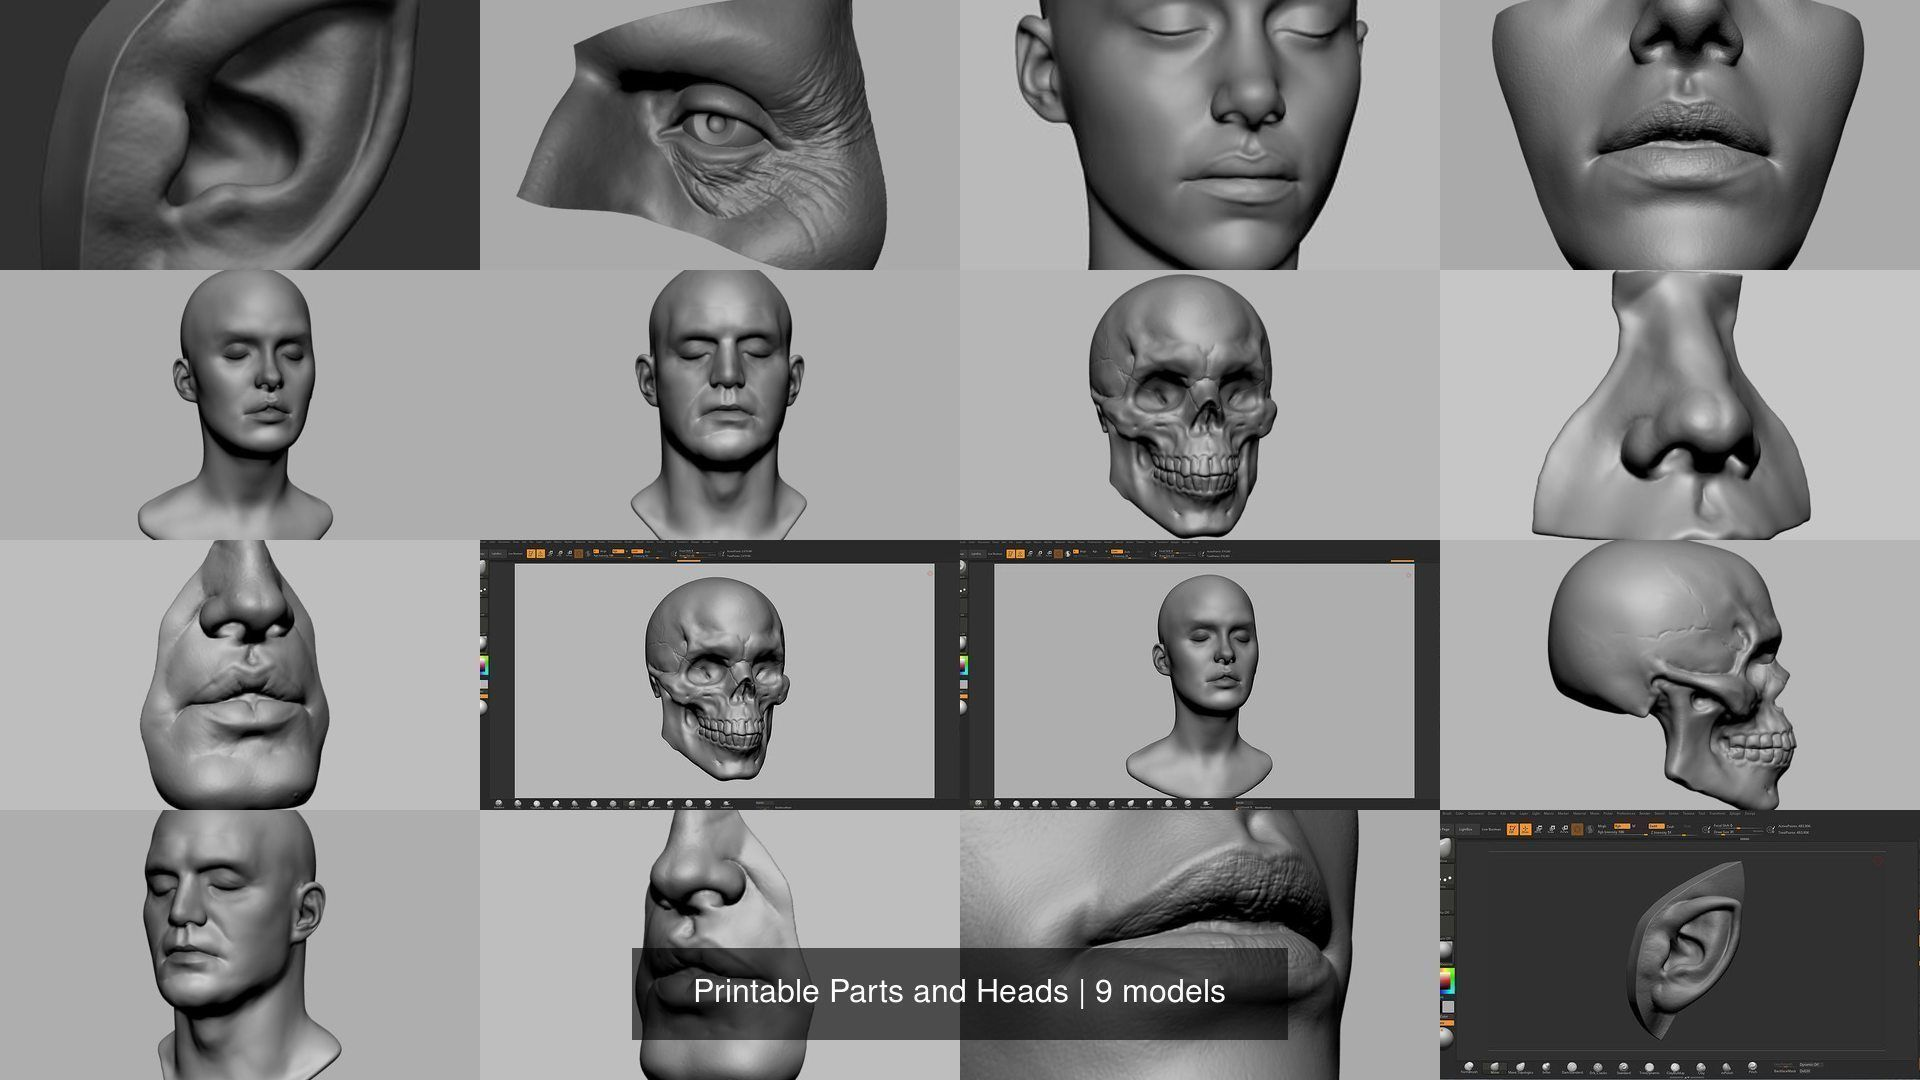 Printable Parts and Heads